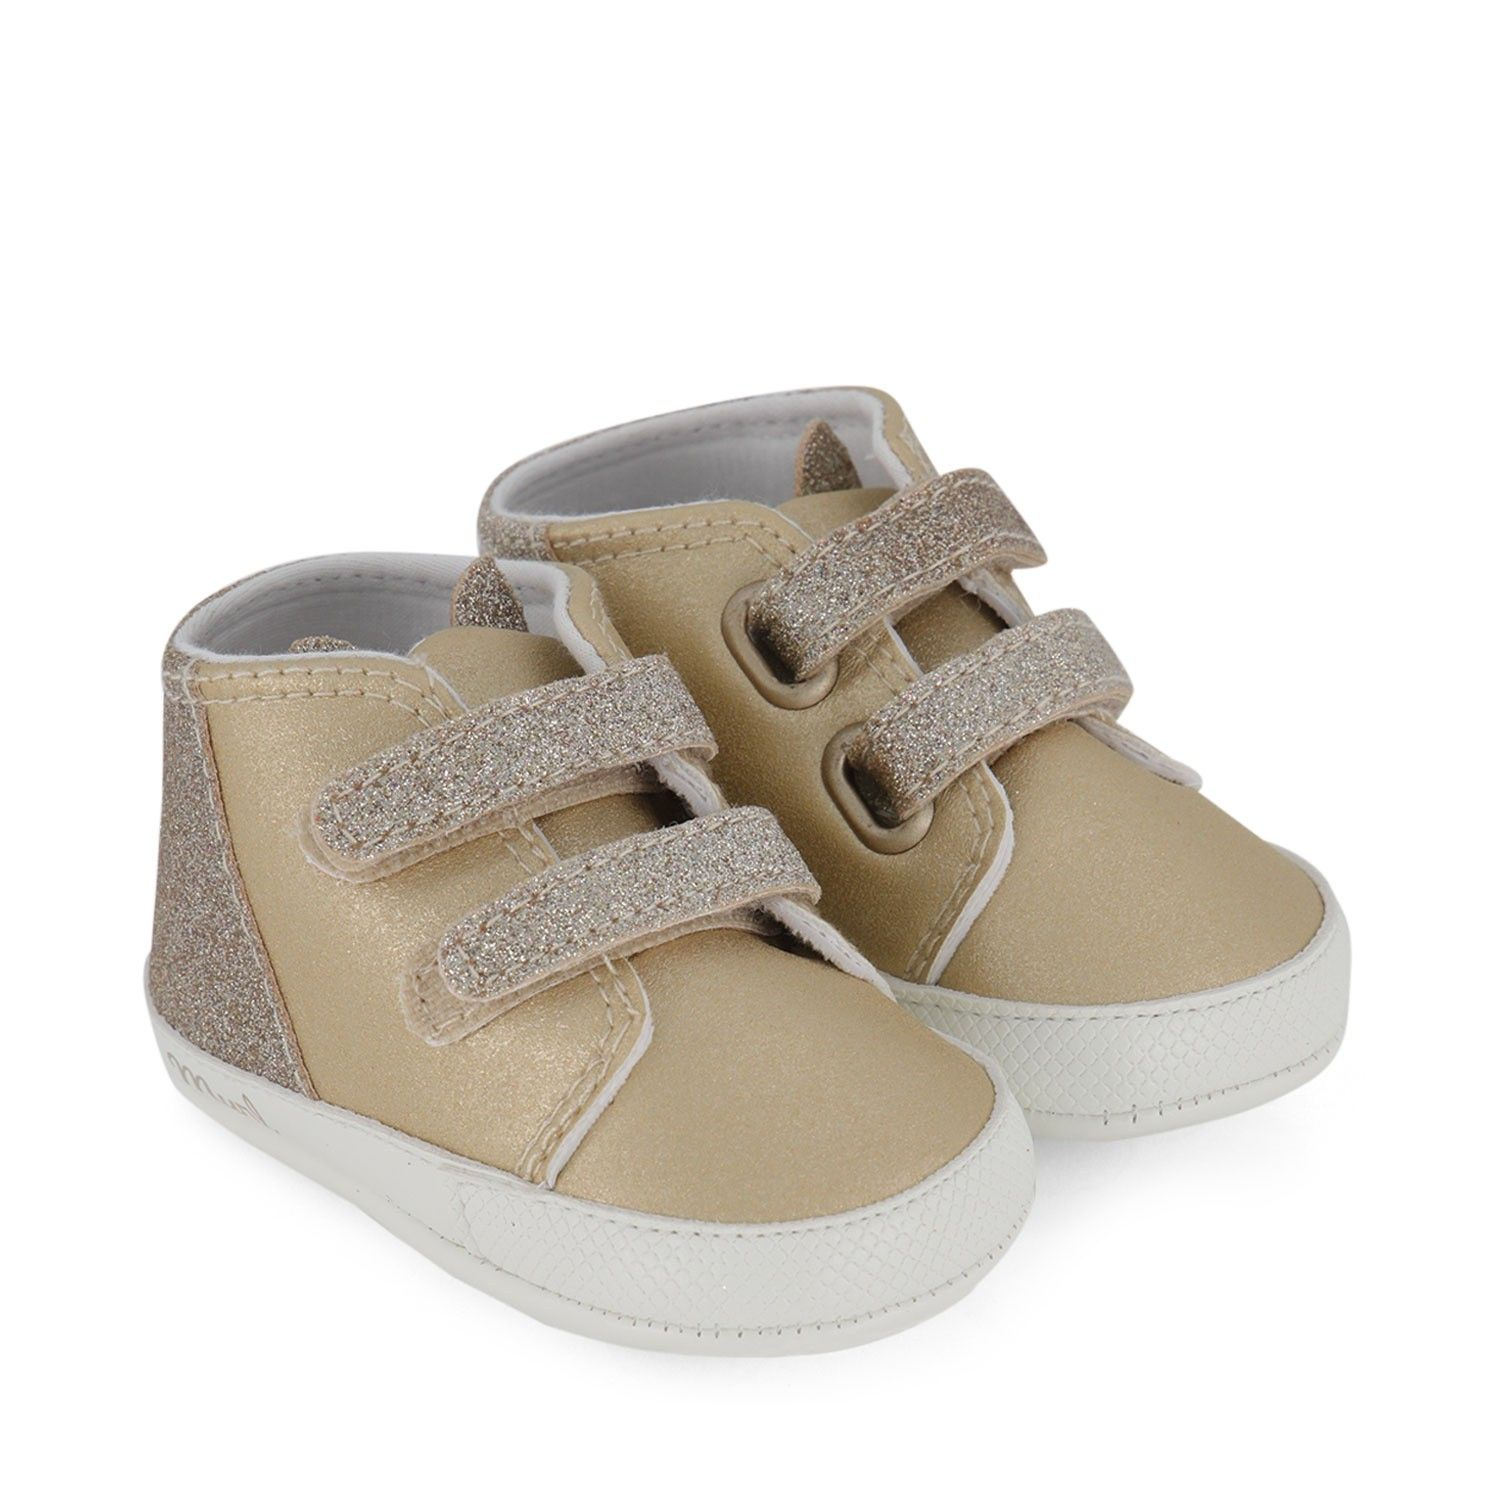 Picture of Mayoral 9338 baby shoes gold